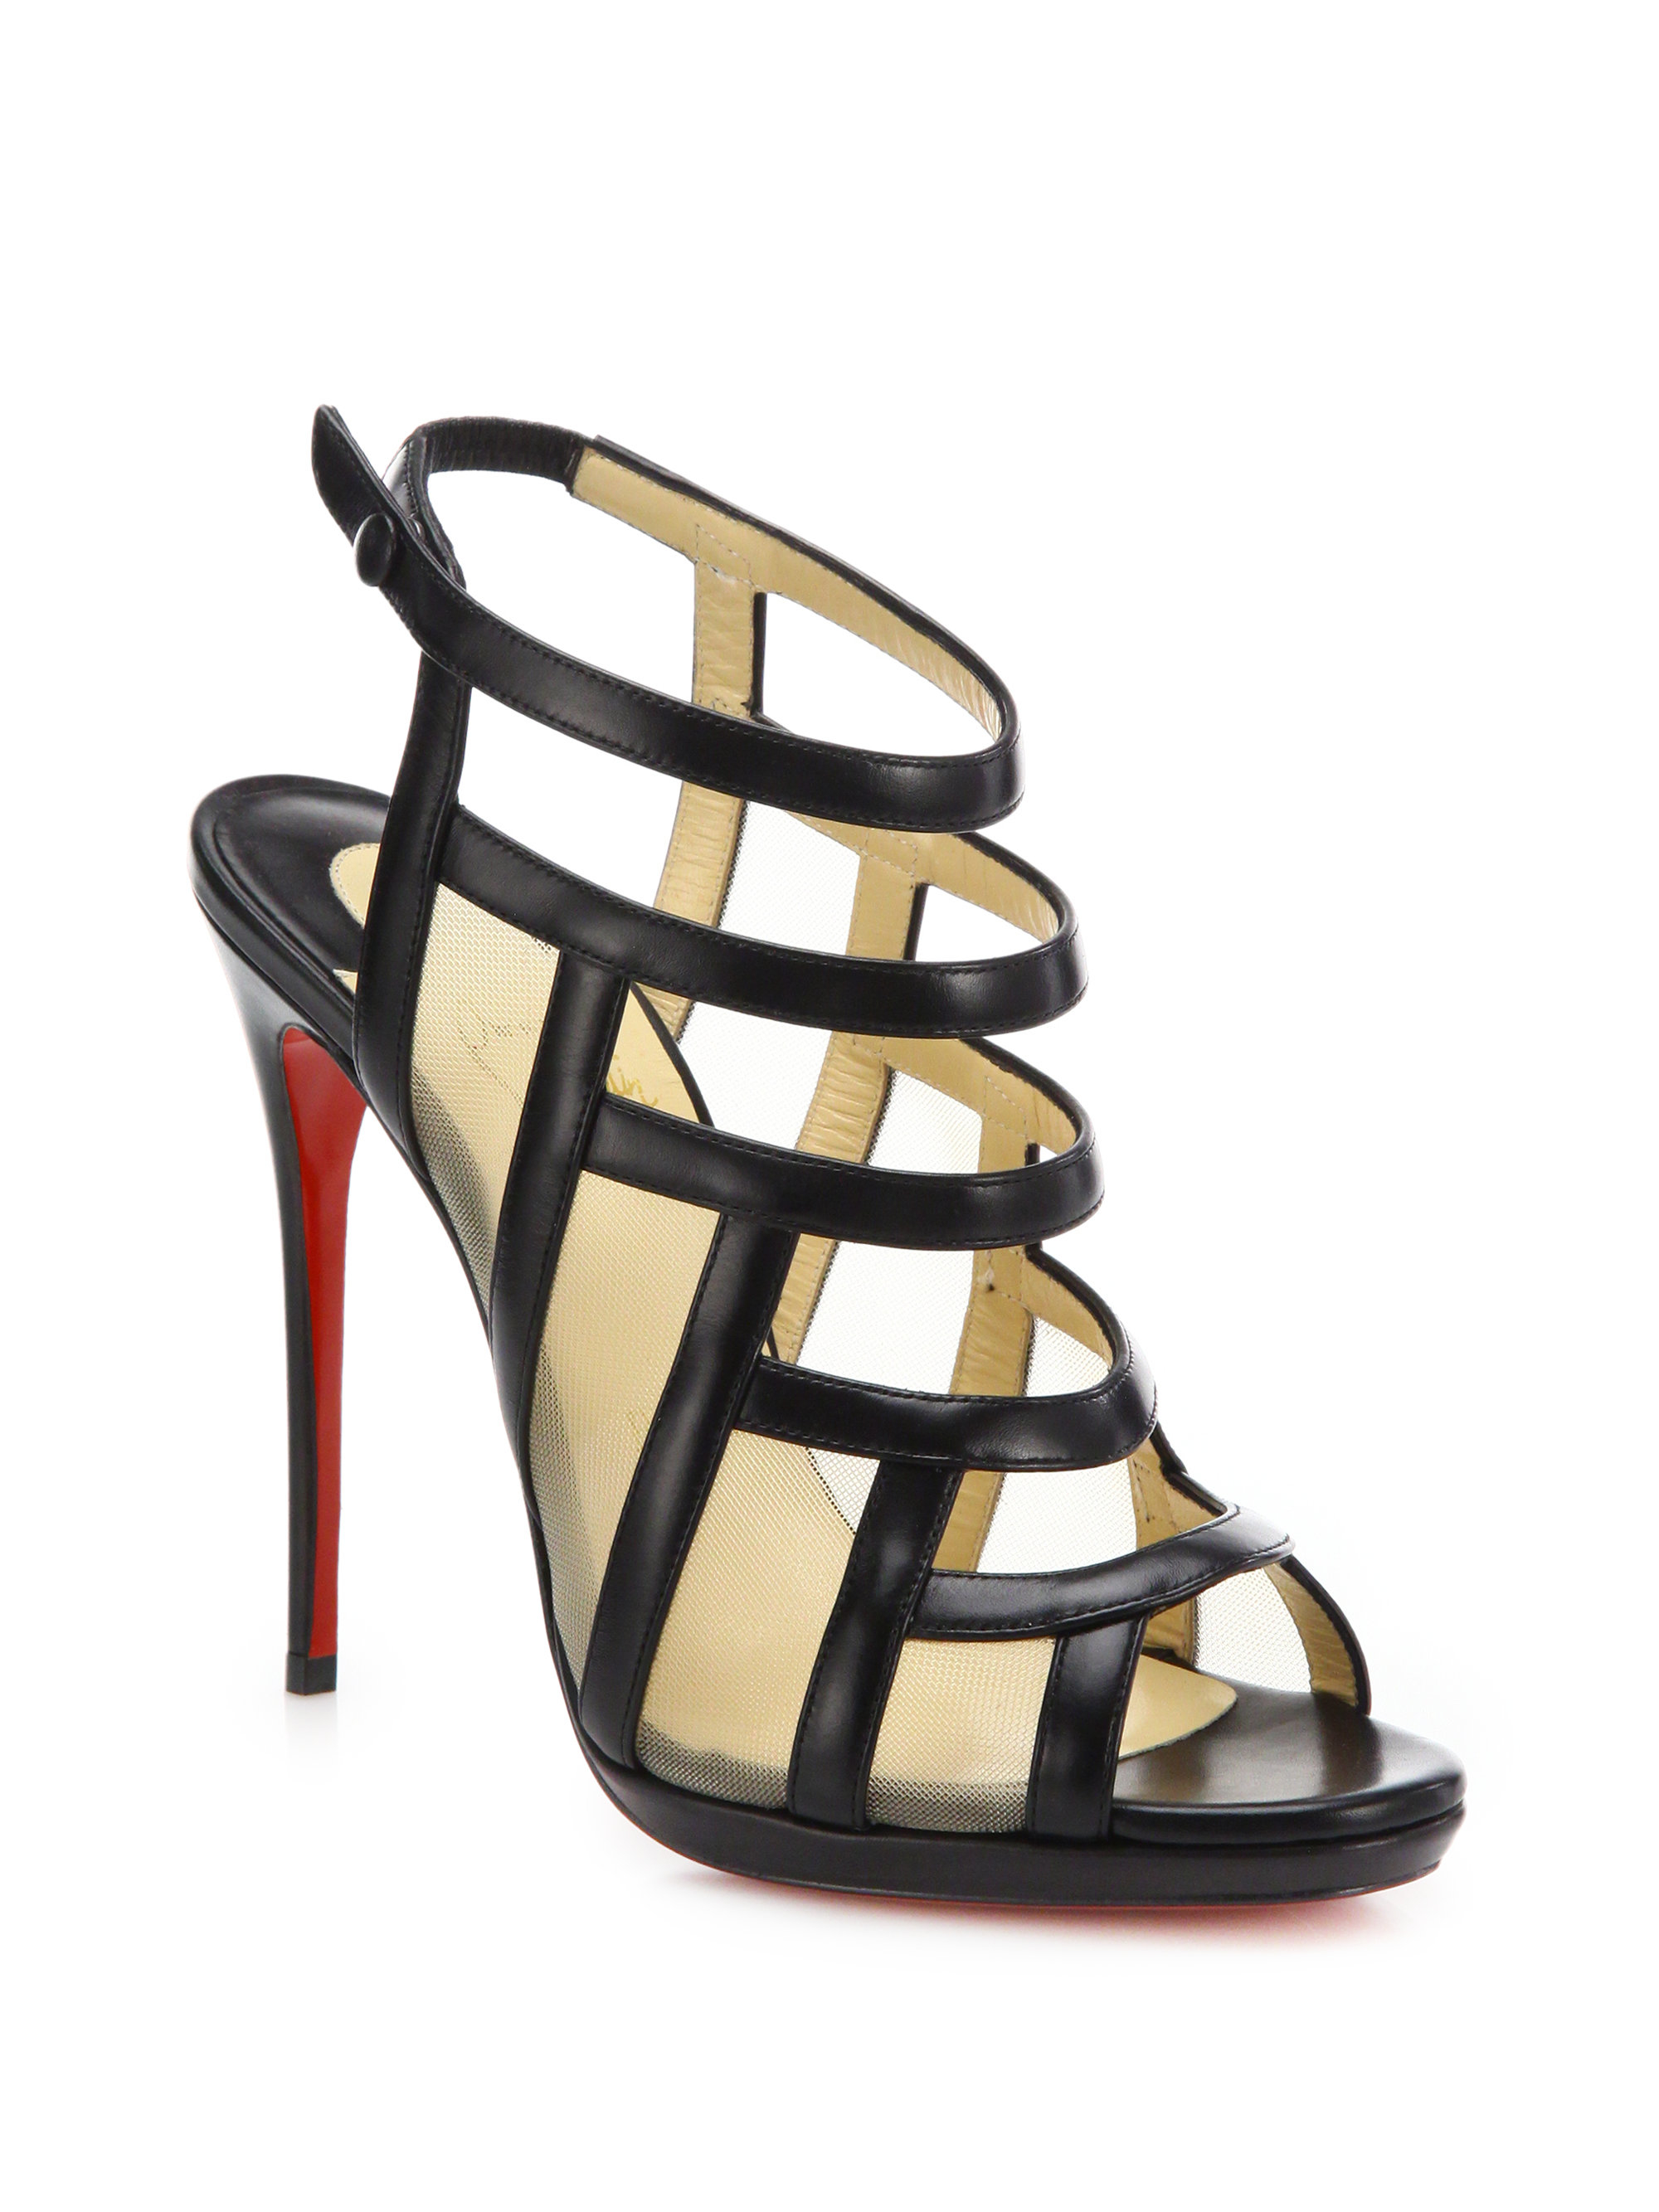 chris louboutin website - christian louboutin caged sandals Black and beige leather covered ...